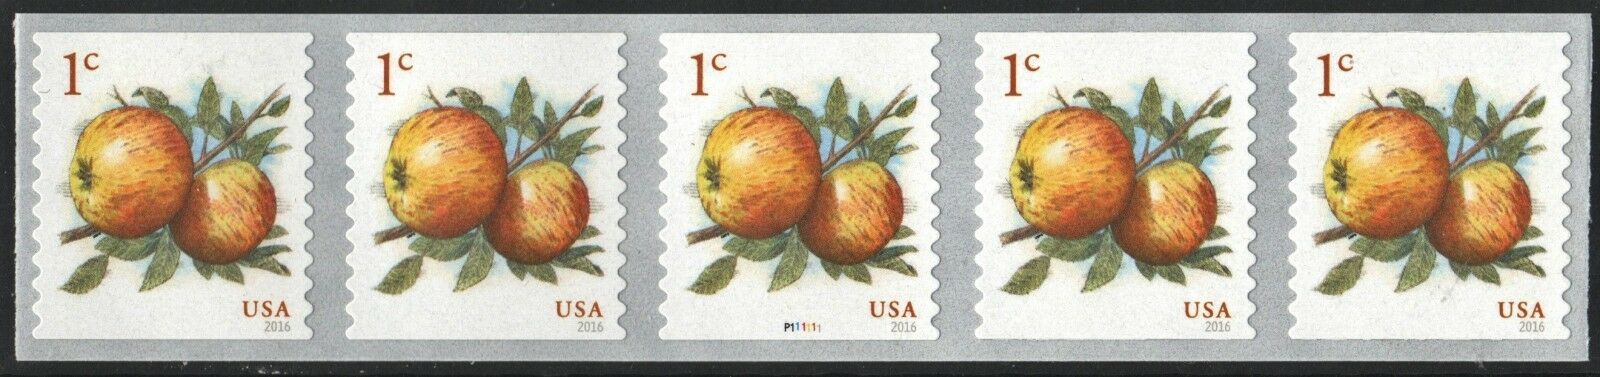 2016 1c Albemarle Pippin Apples, Coil, Plate Strip of 5